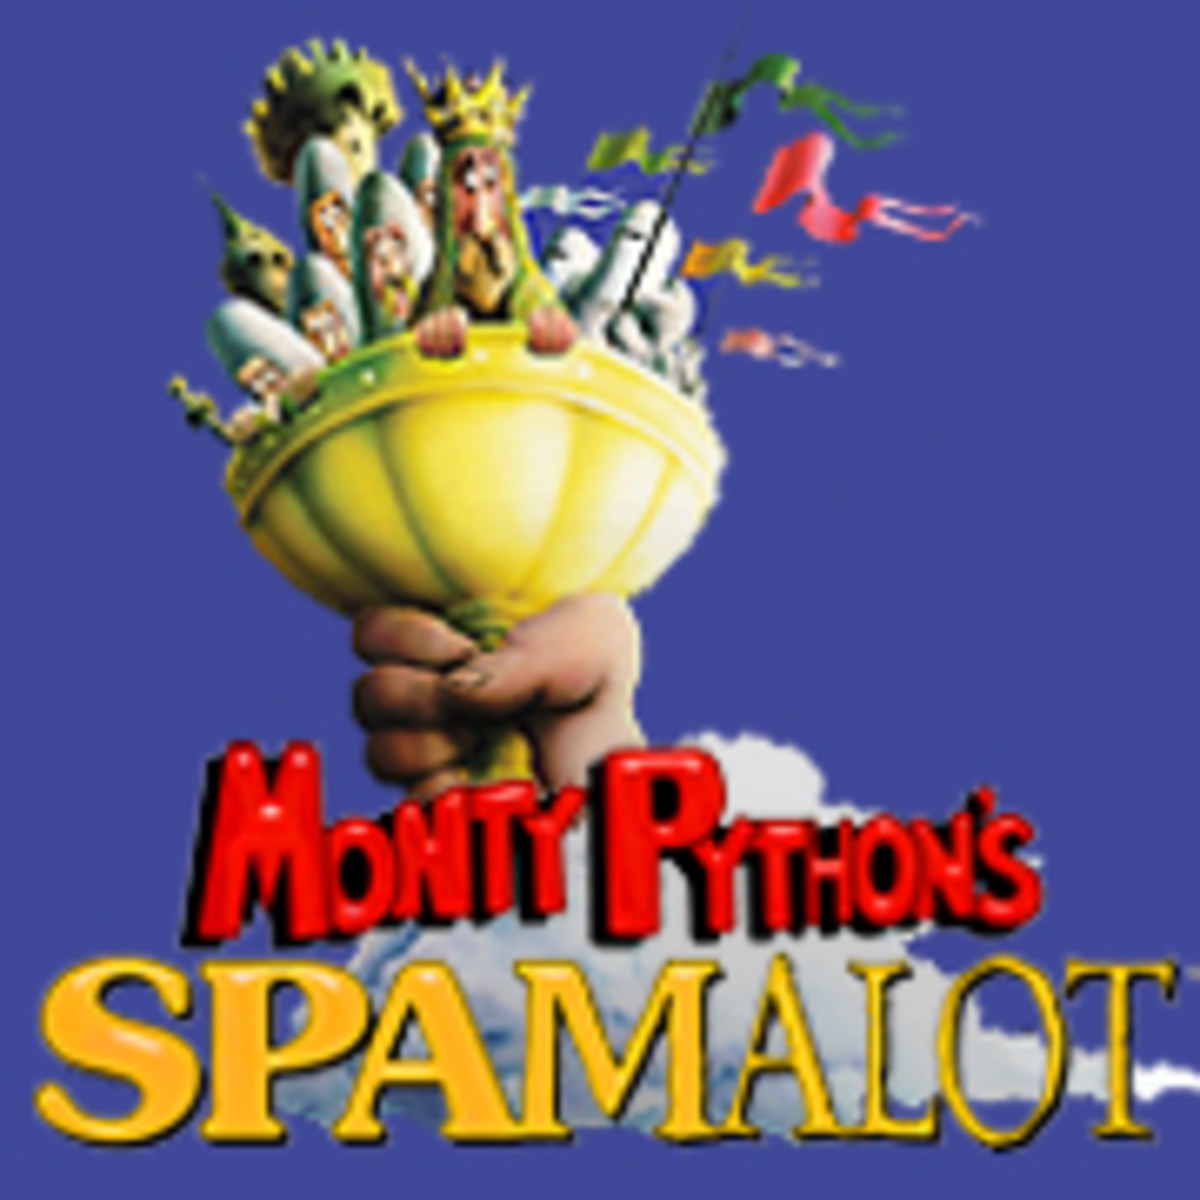 Special Offers – Spamalot – April 2008